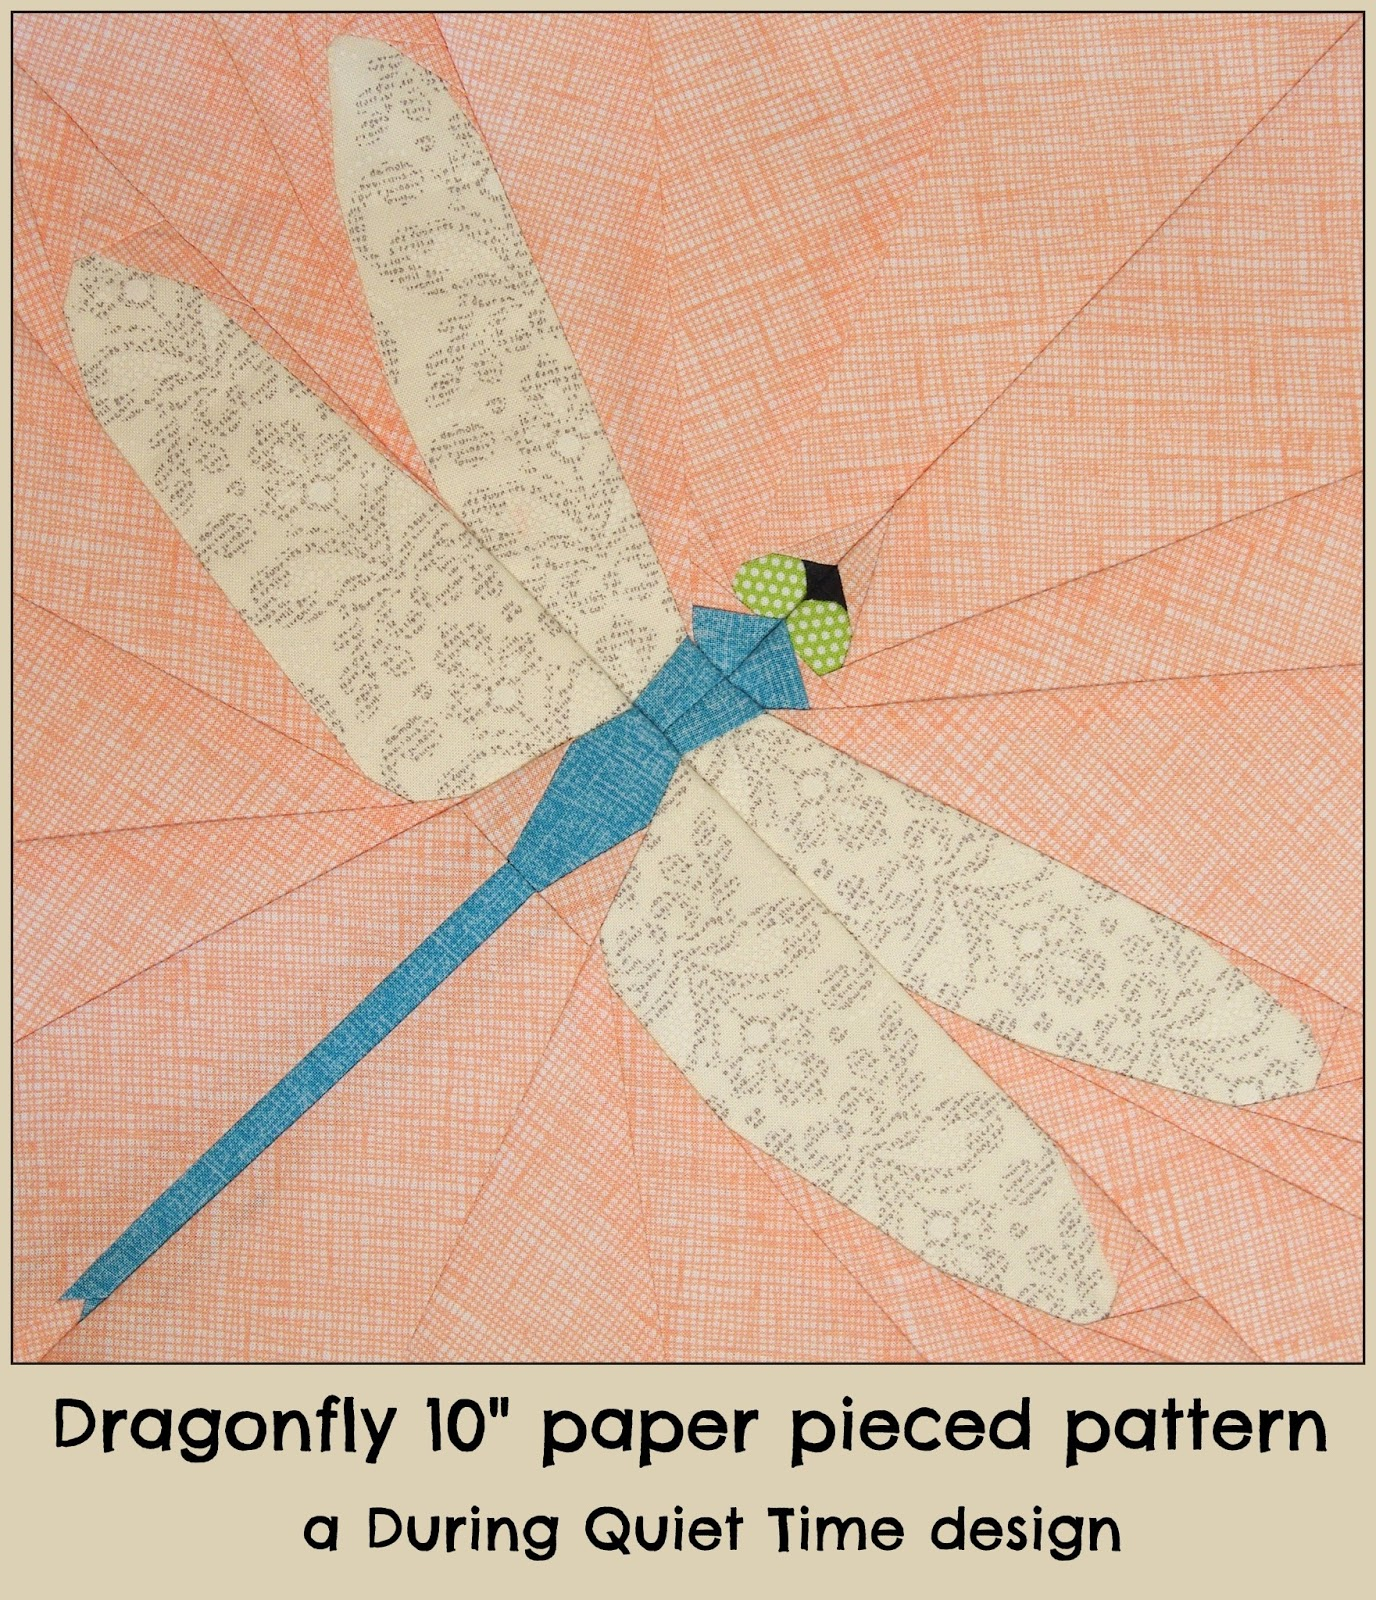 Dragonfly Paper Pieced Pattern During Quiet Time